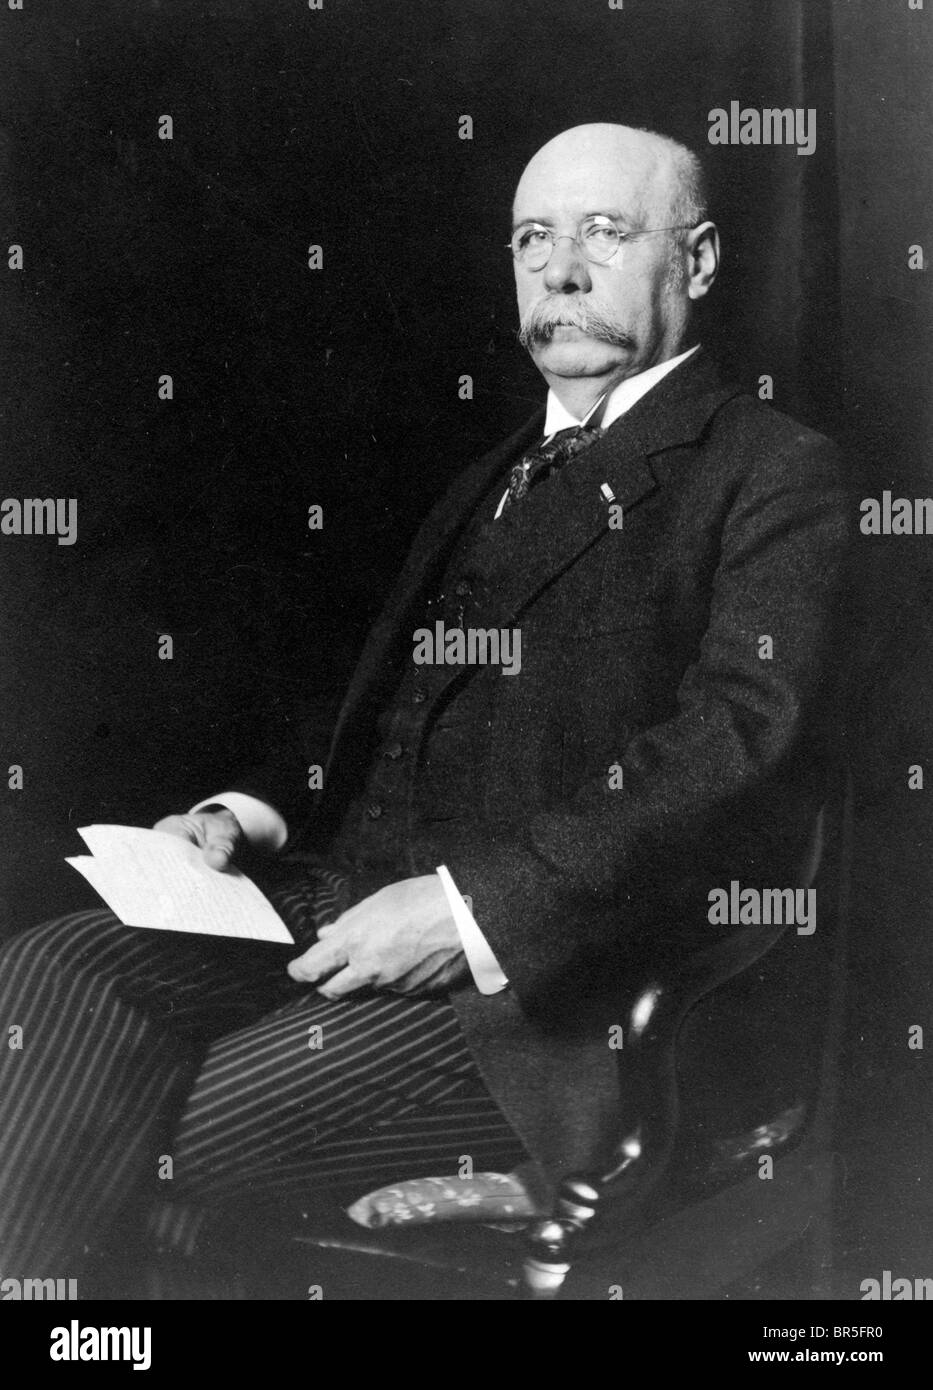 Historic photograph, old, honourable gentleman, around 1912 - Stock Image